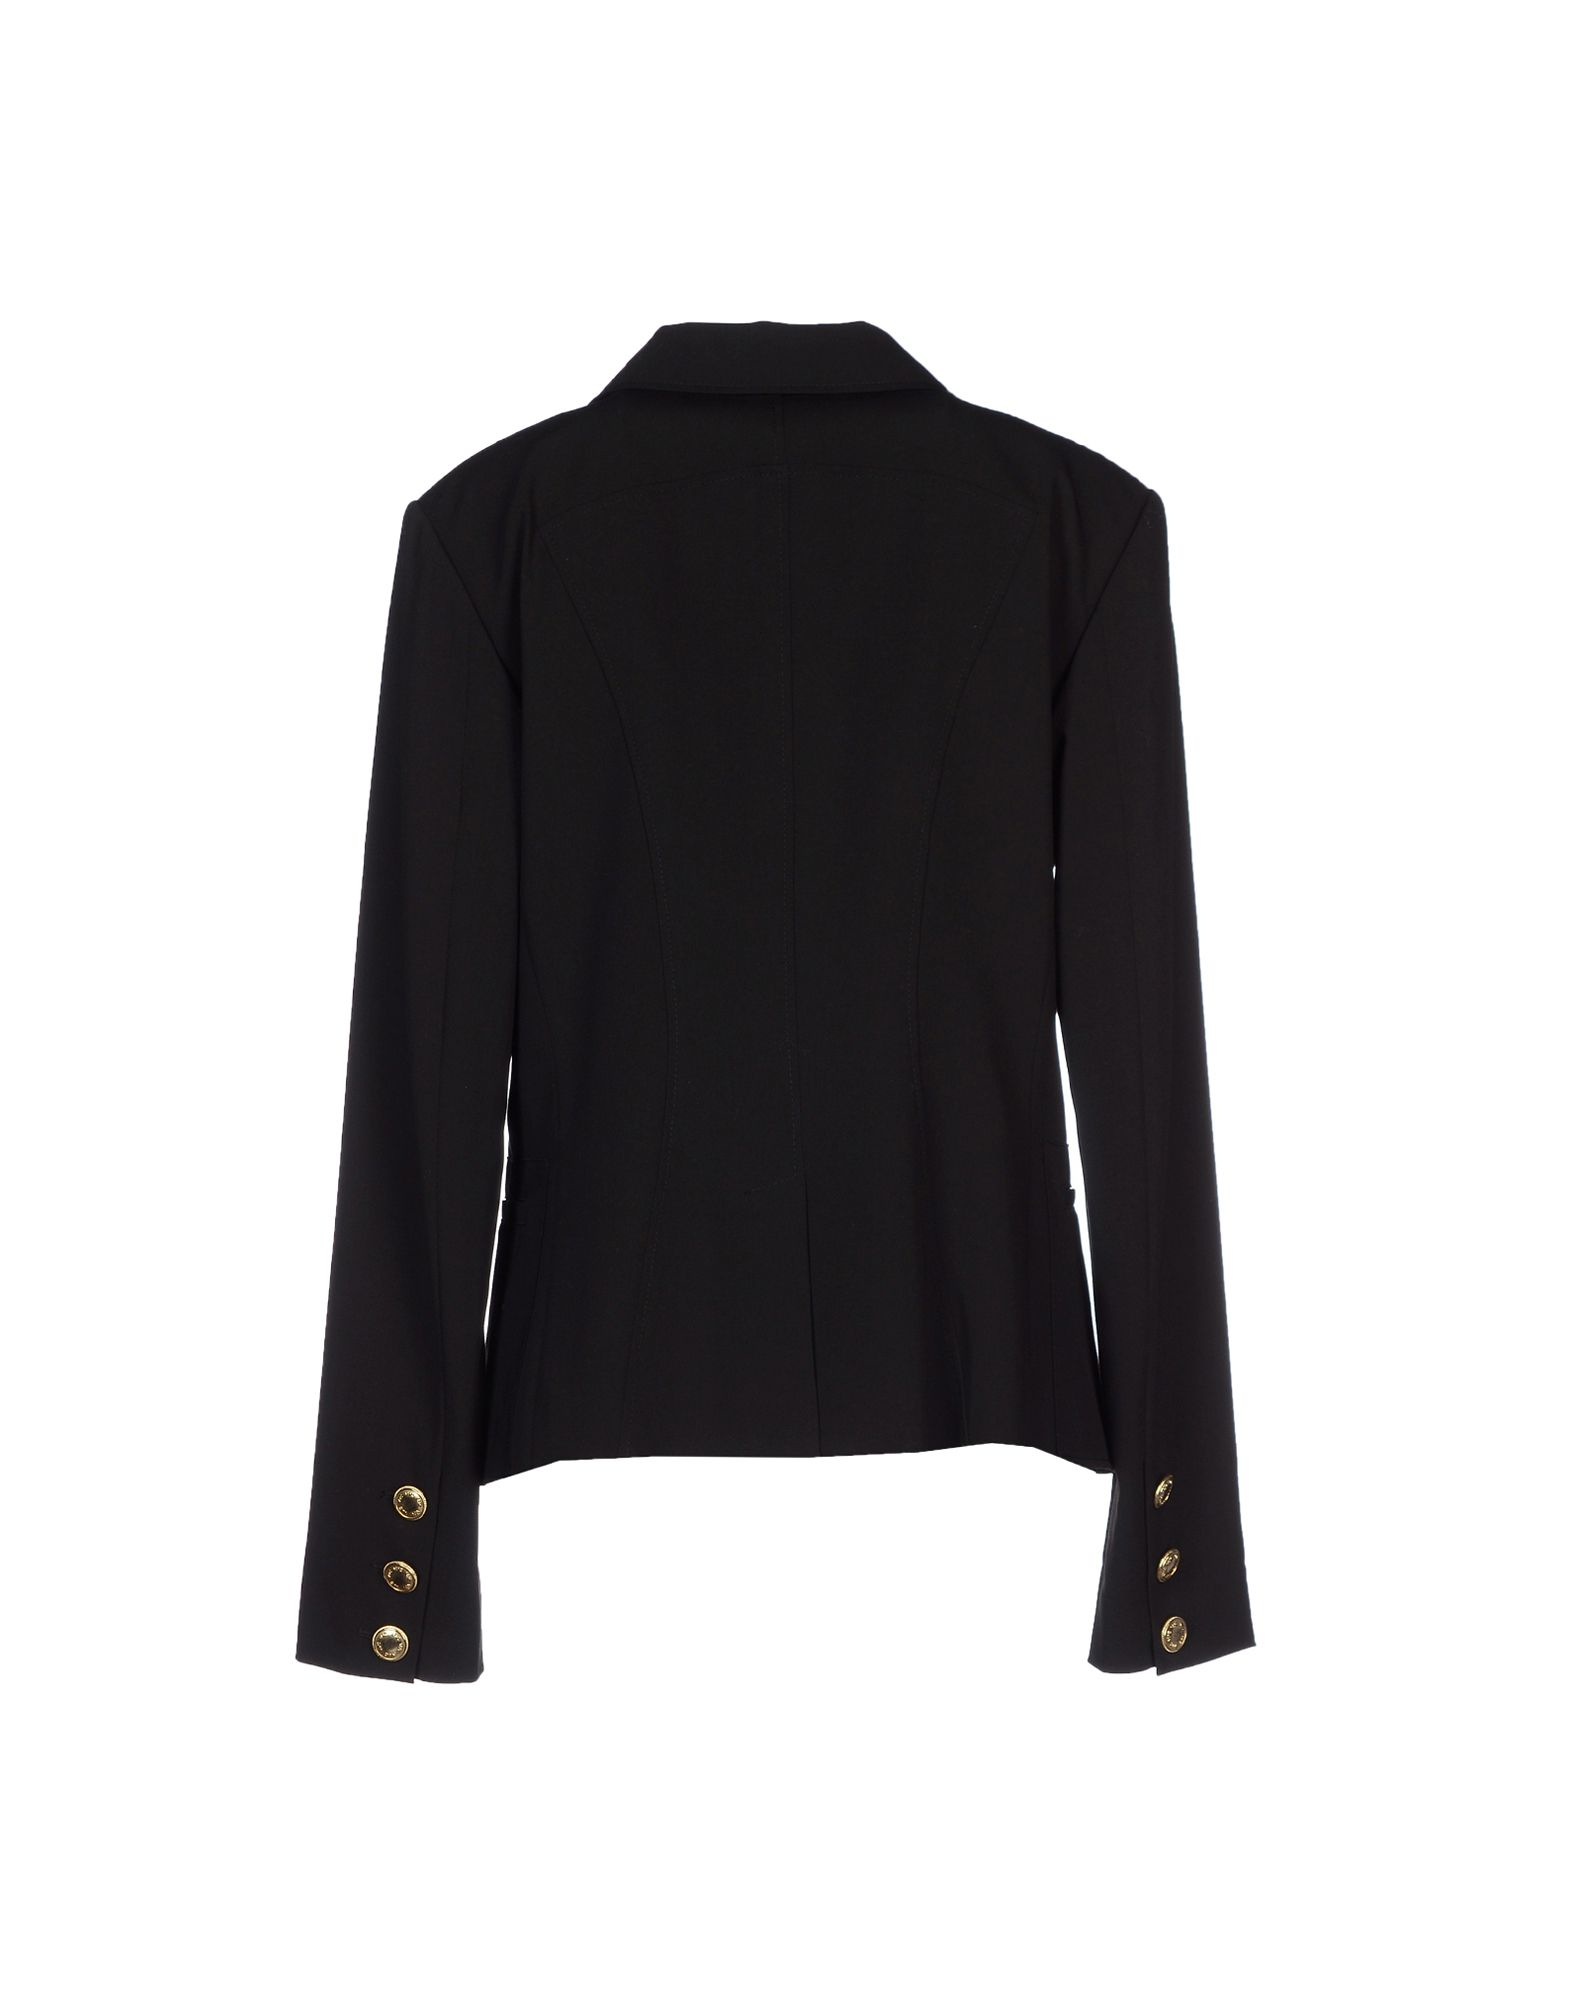 Versace Jeans Couture Synthetic Blazer in Black